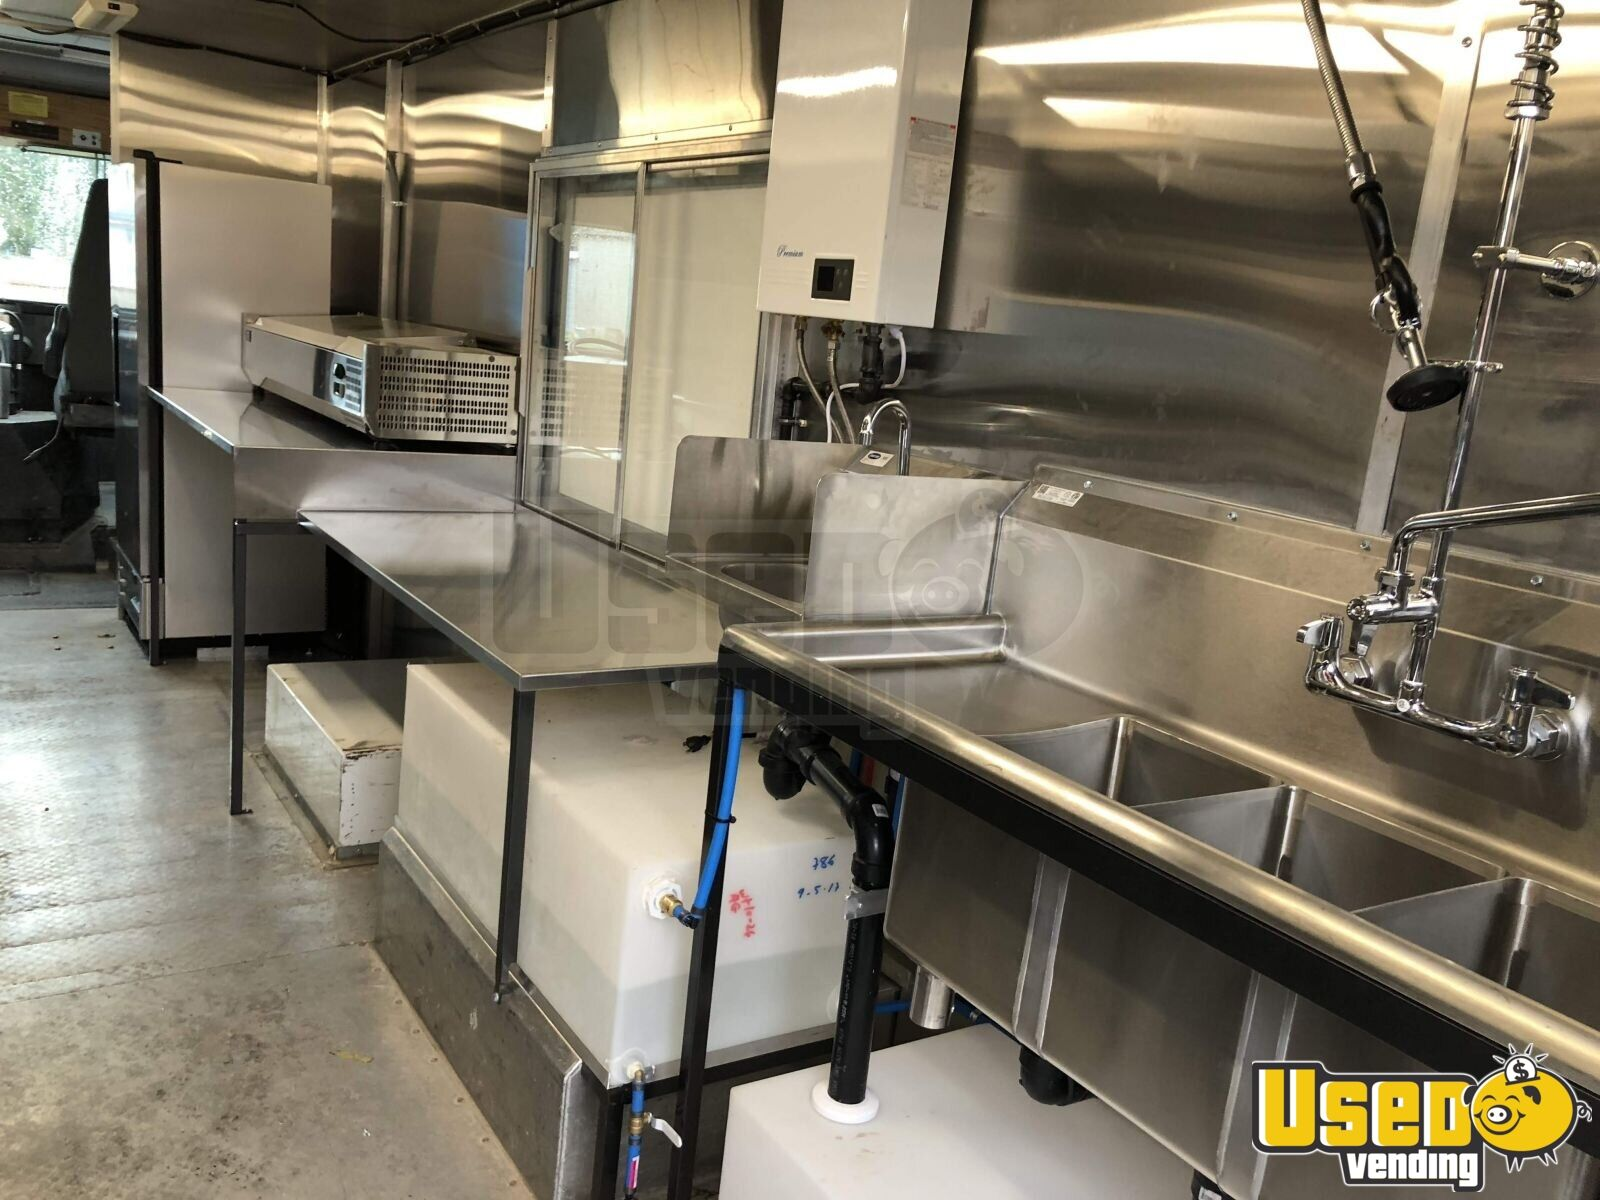 1996 27' Step Van Kitchen Food Truck All-purpose Food Truck Cabinets Washington for Sale - 3